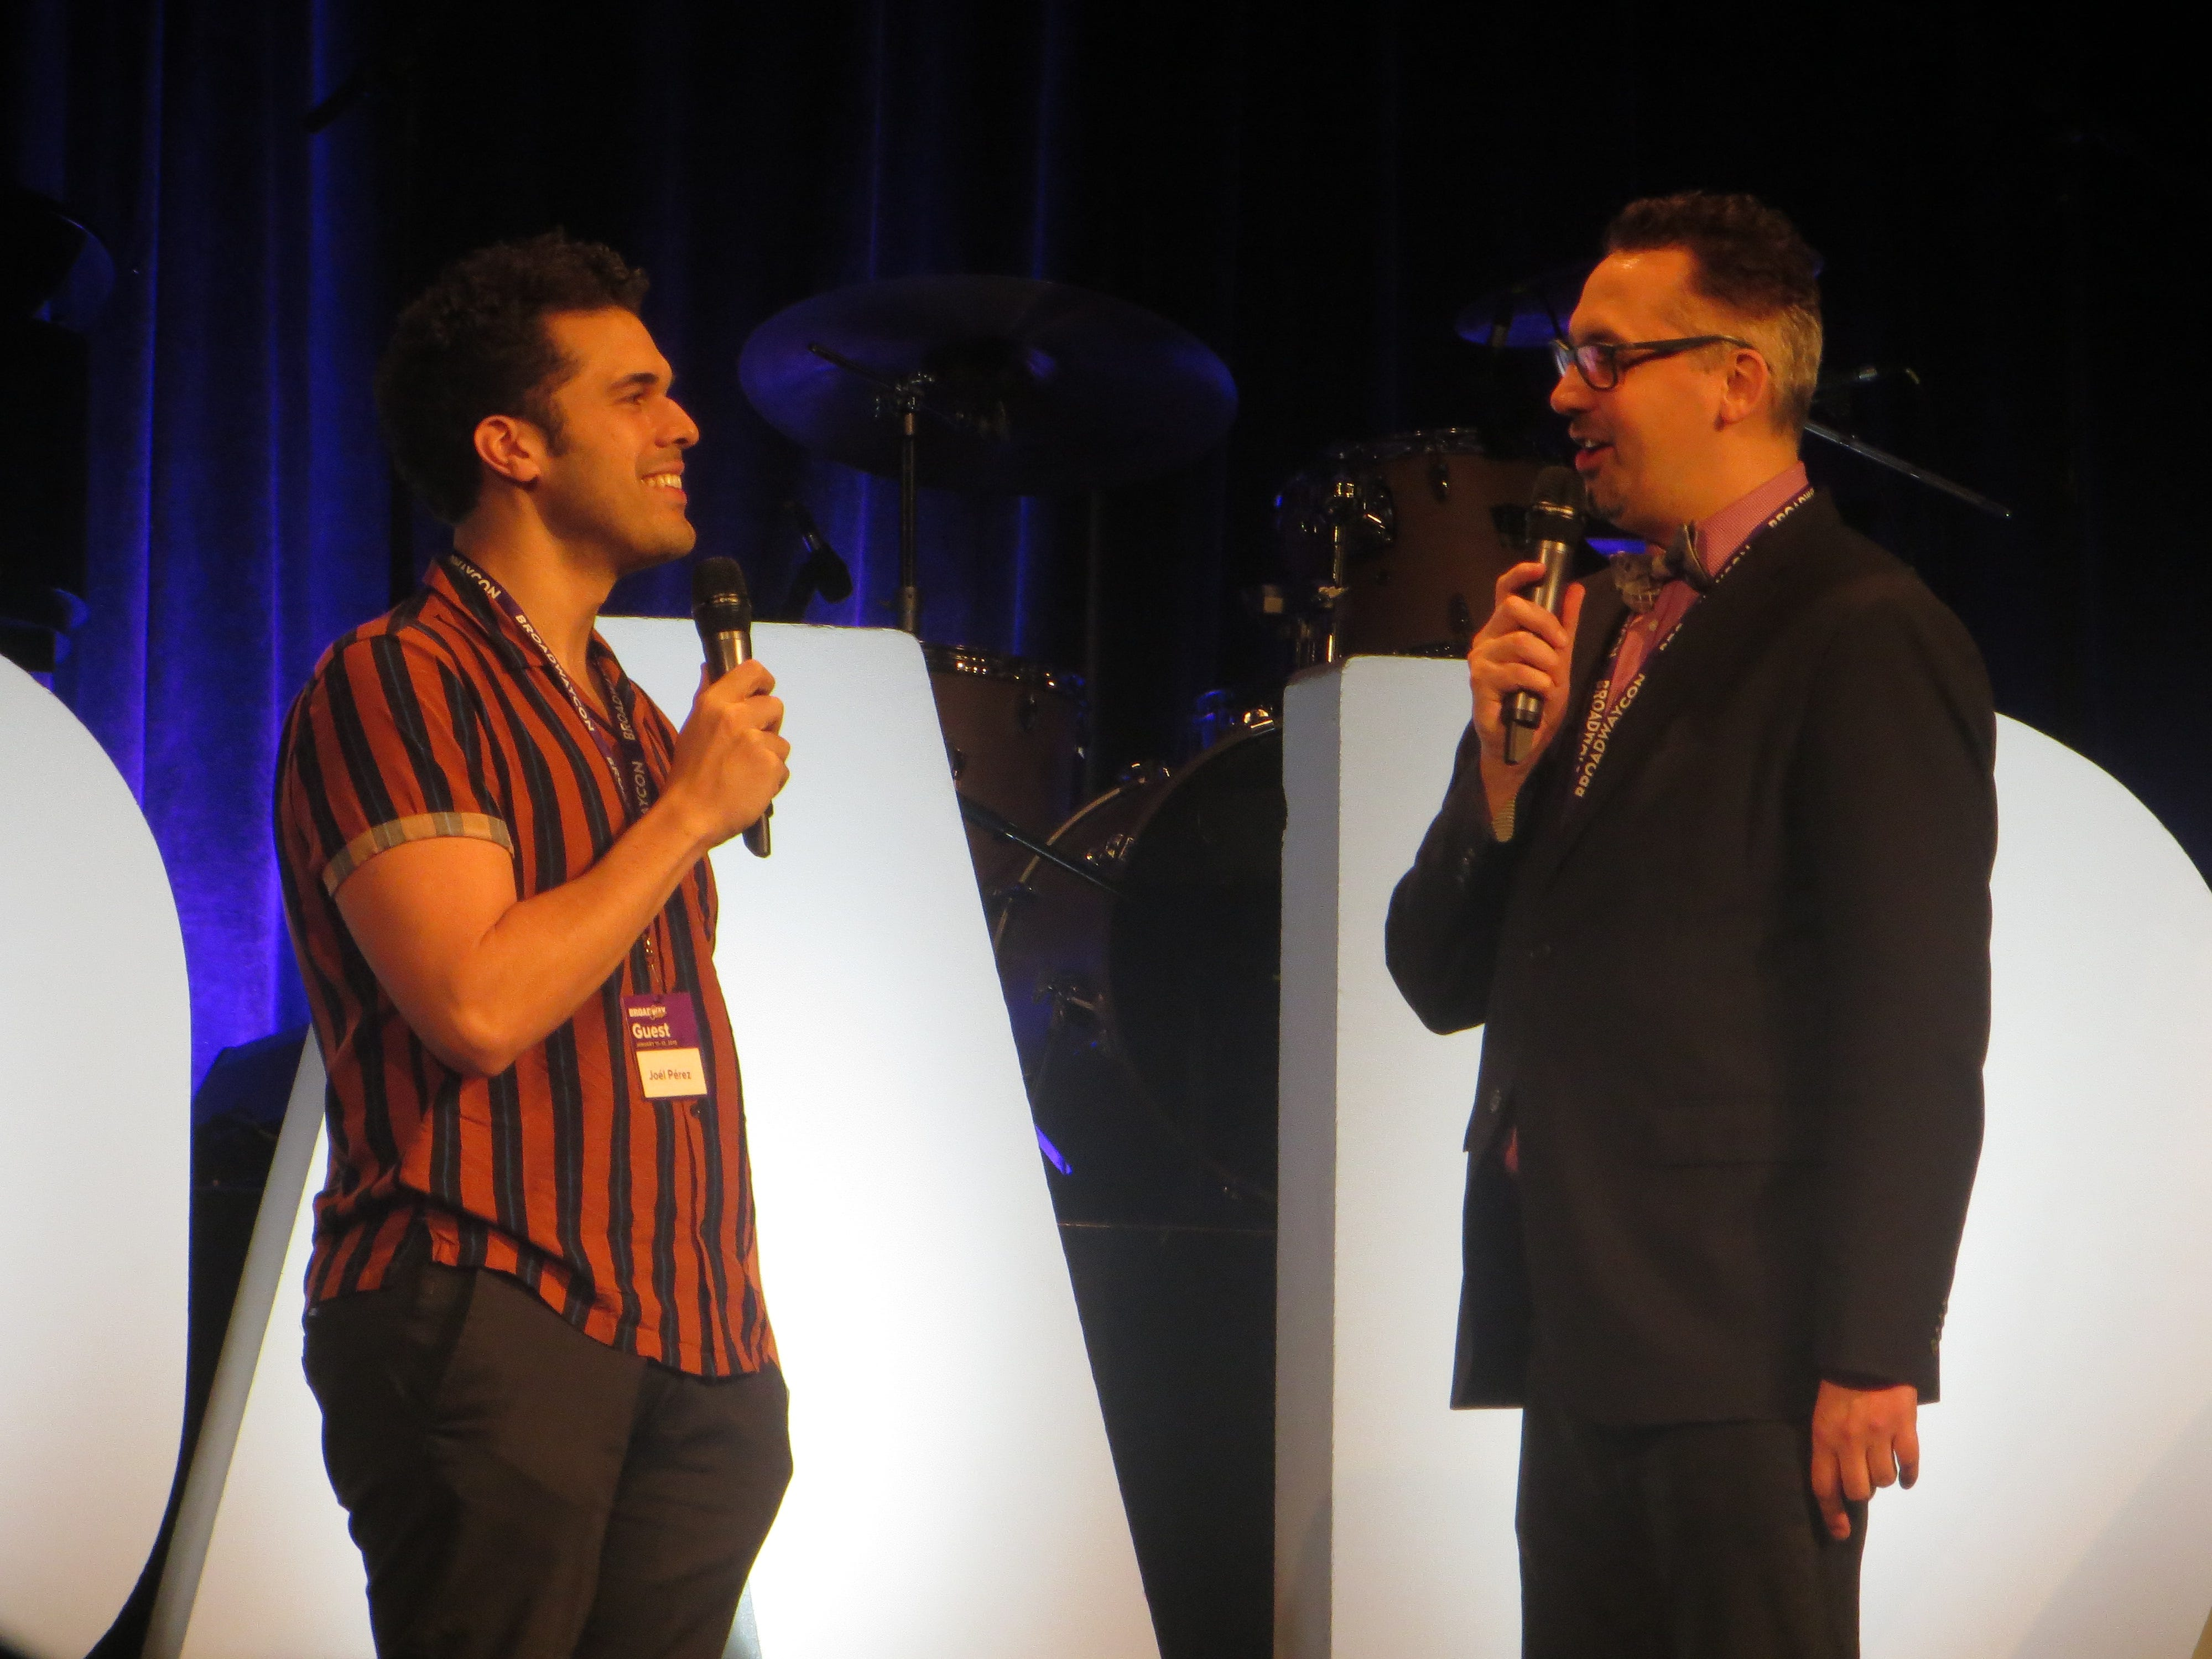 Joel Perez and Ben Cameron at BroadwayCon 2019, held Jan. 11 to 13, 2019, at the New York Hilton Midtown in Manhattan.